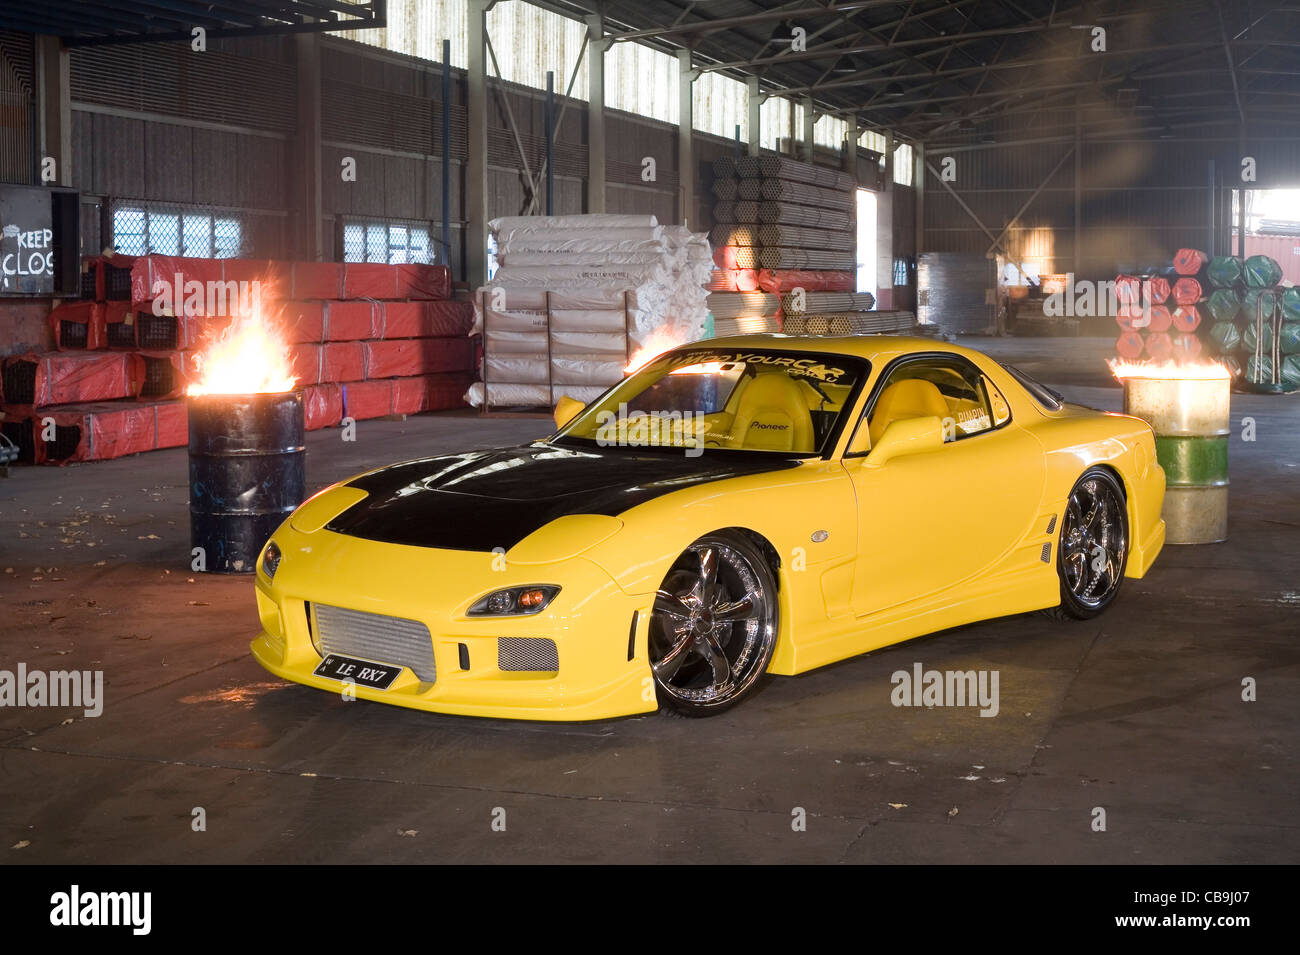 Mazda Rx7 Sport >> Heavily Modified Rotary Wankel Engine Mazda Rx7 Sports Car Built By